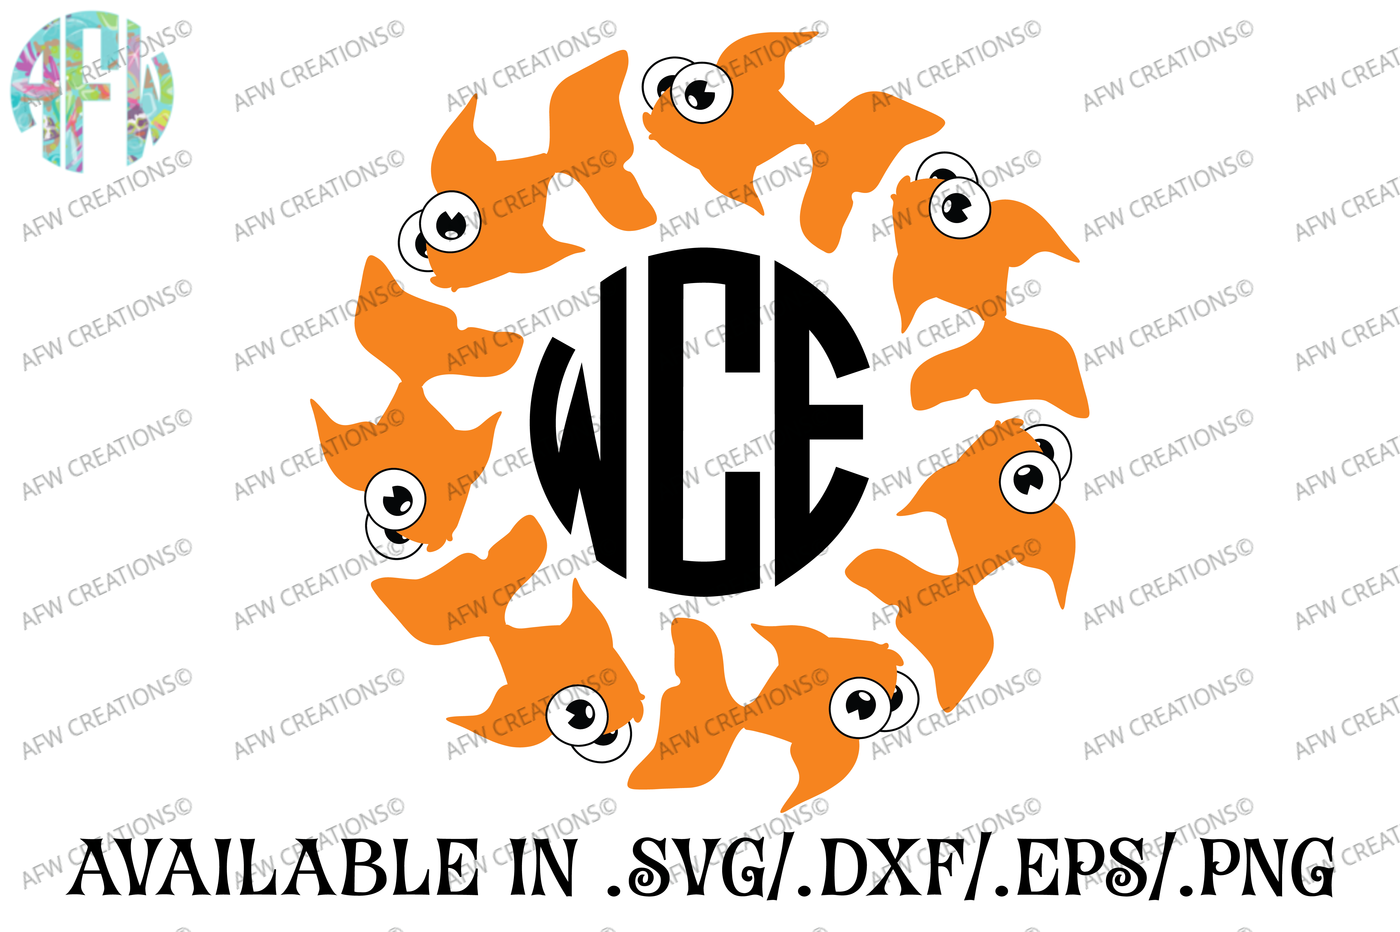 Tropical Fish Monograms Svg Dxf Eps Cut File By Afw Designs Thehungryjpeg Com